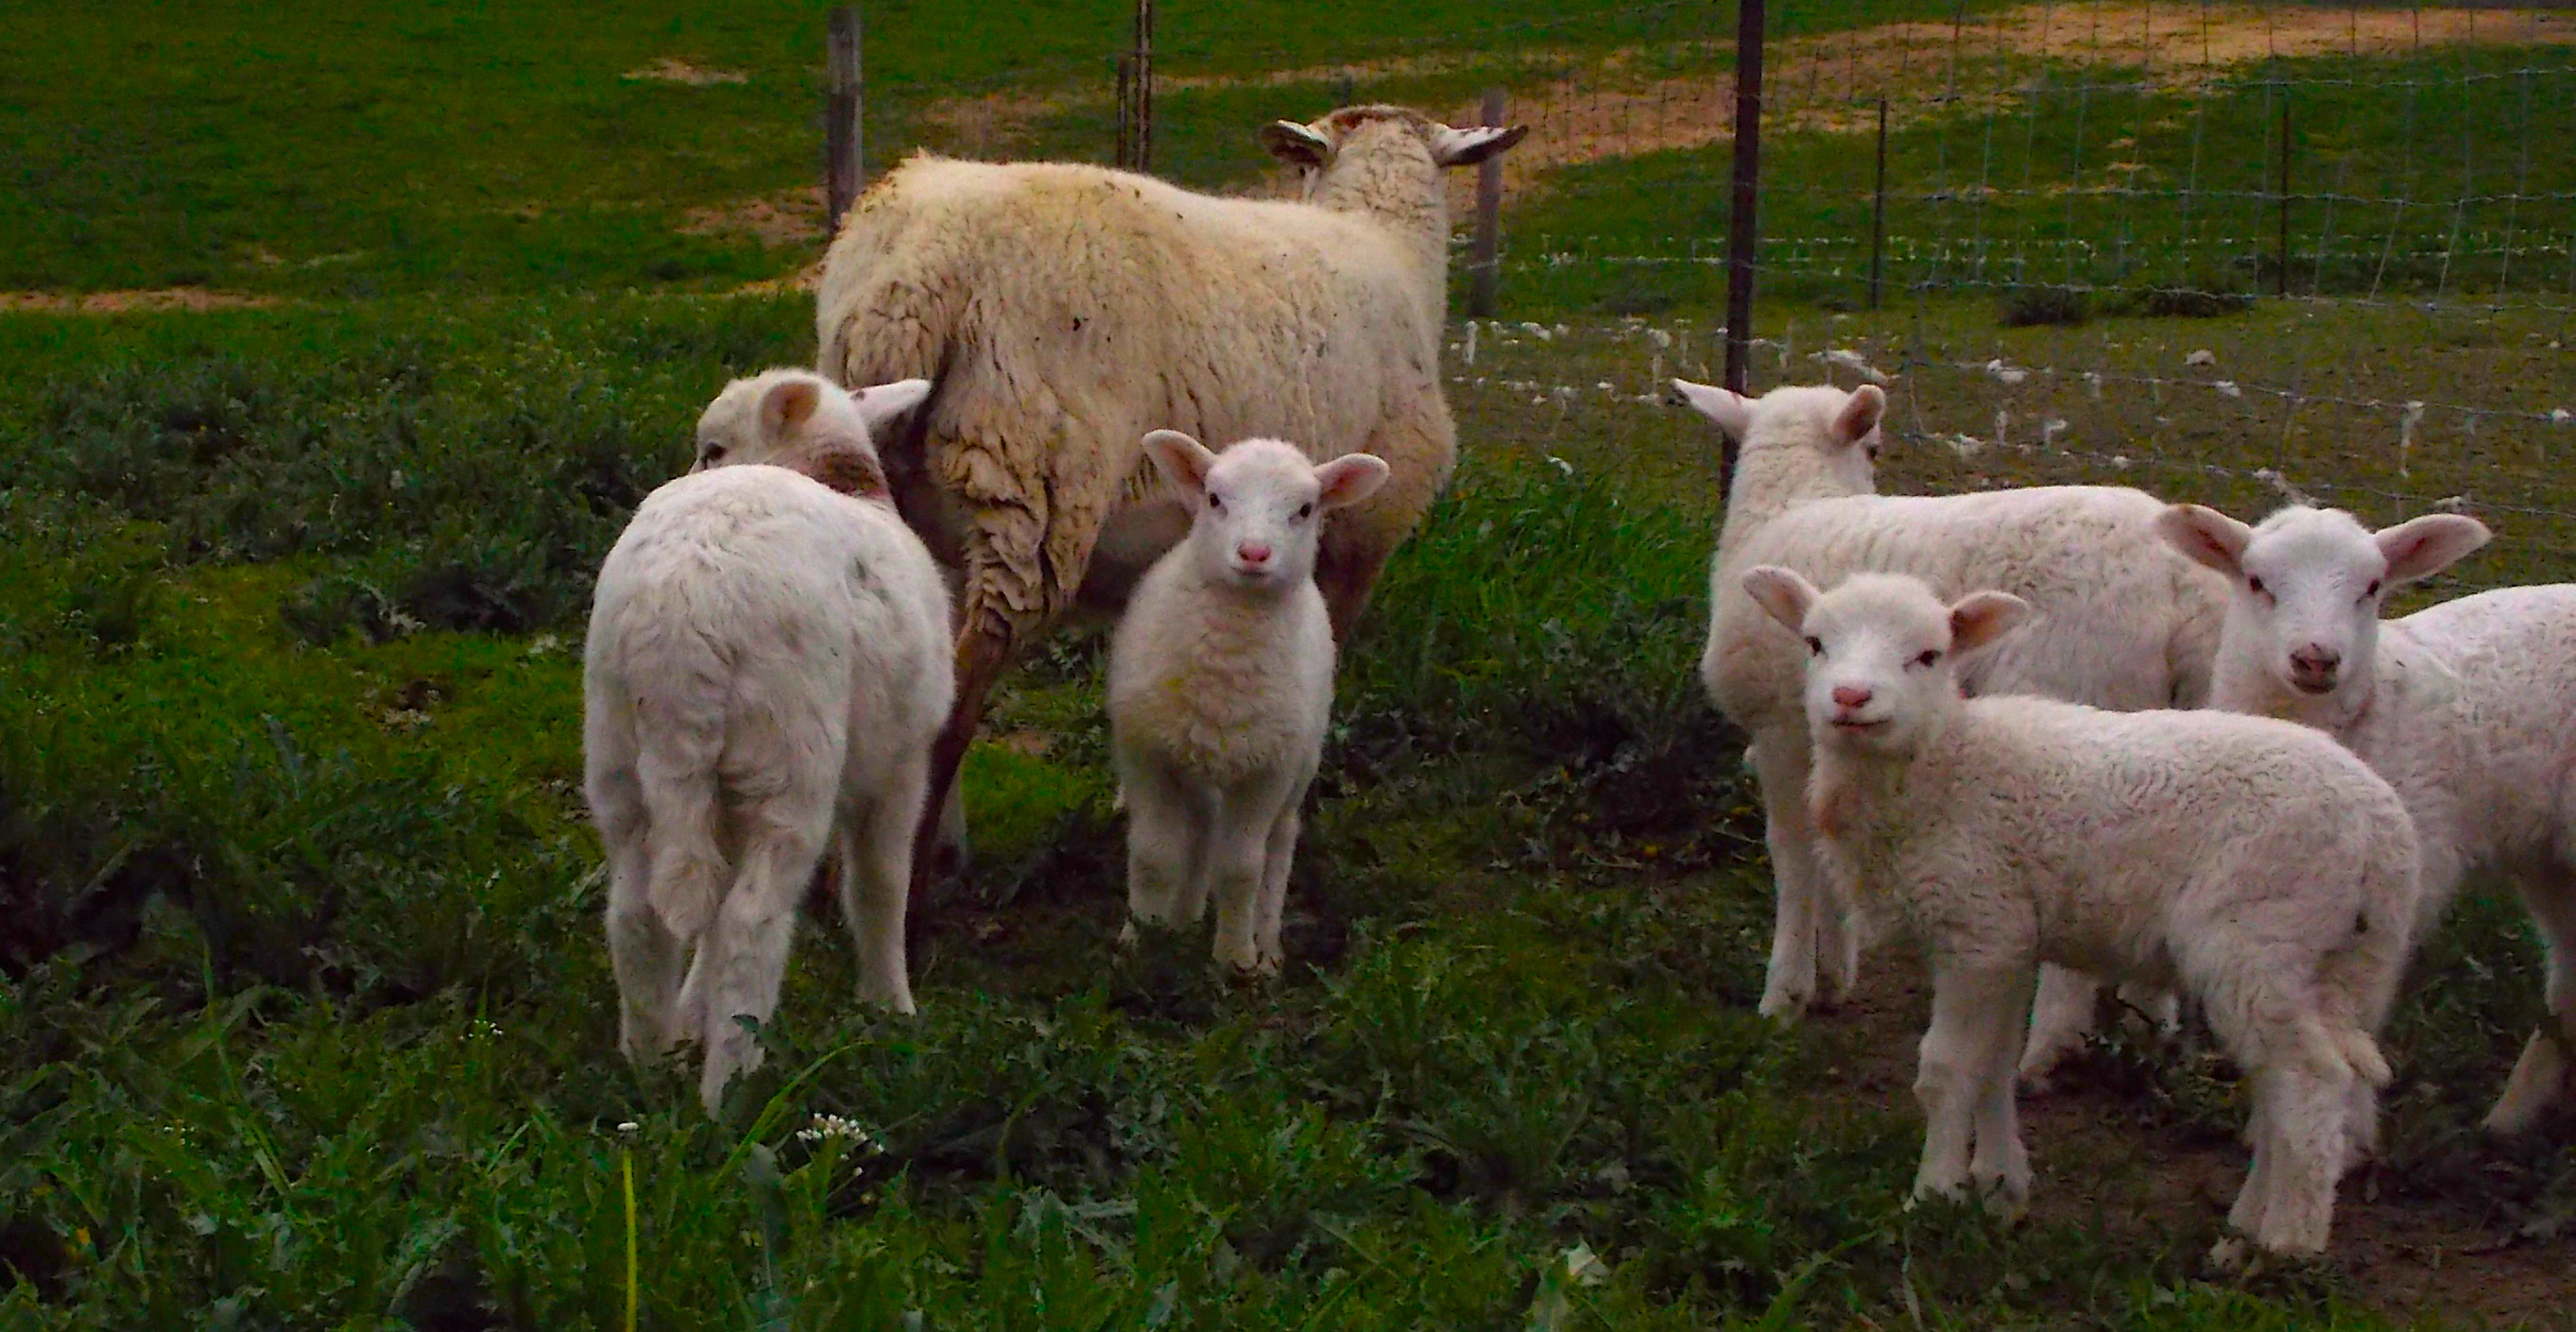 New calves, kid goats and lambs